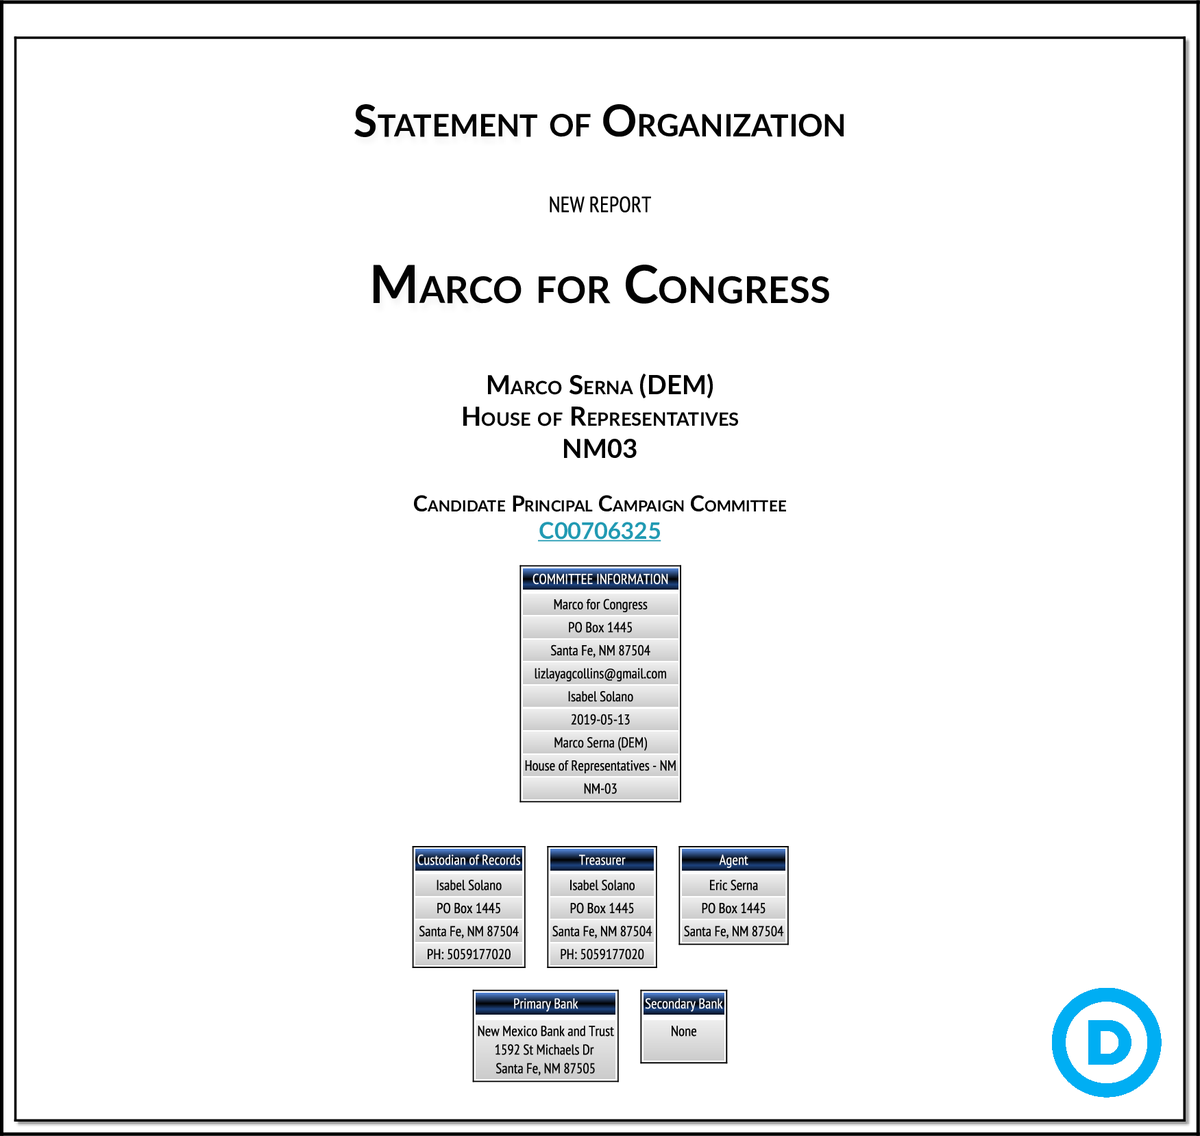 NEW FEC F1 #NM03 Marco for Congress http://classic.fec.gov/fecviewer/CommitteeDetailFilings.do?tabIndex=3&candidateCommitteeId=C00706325 …